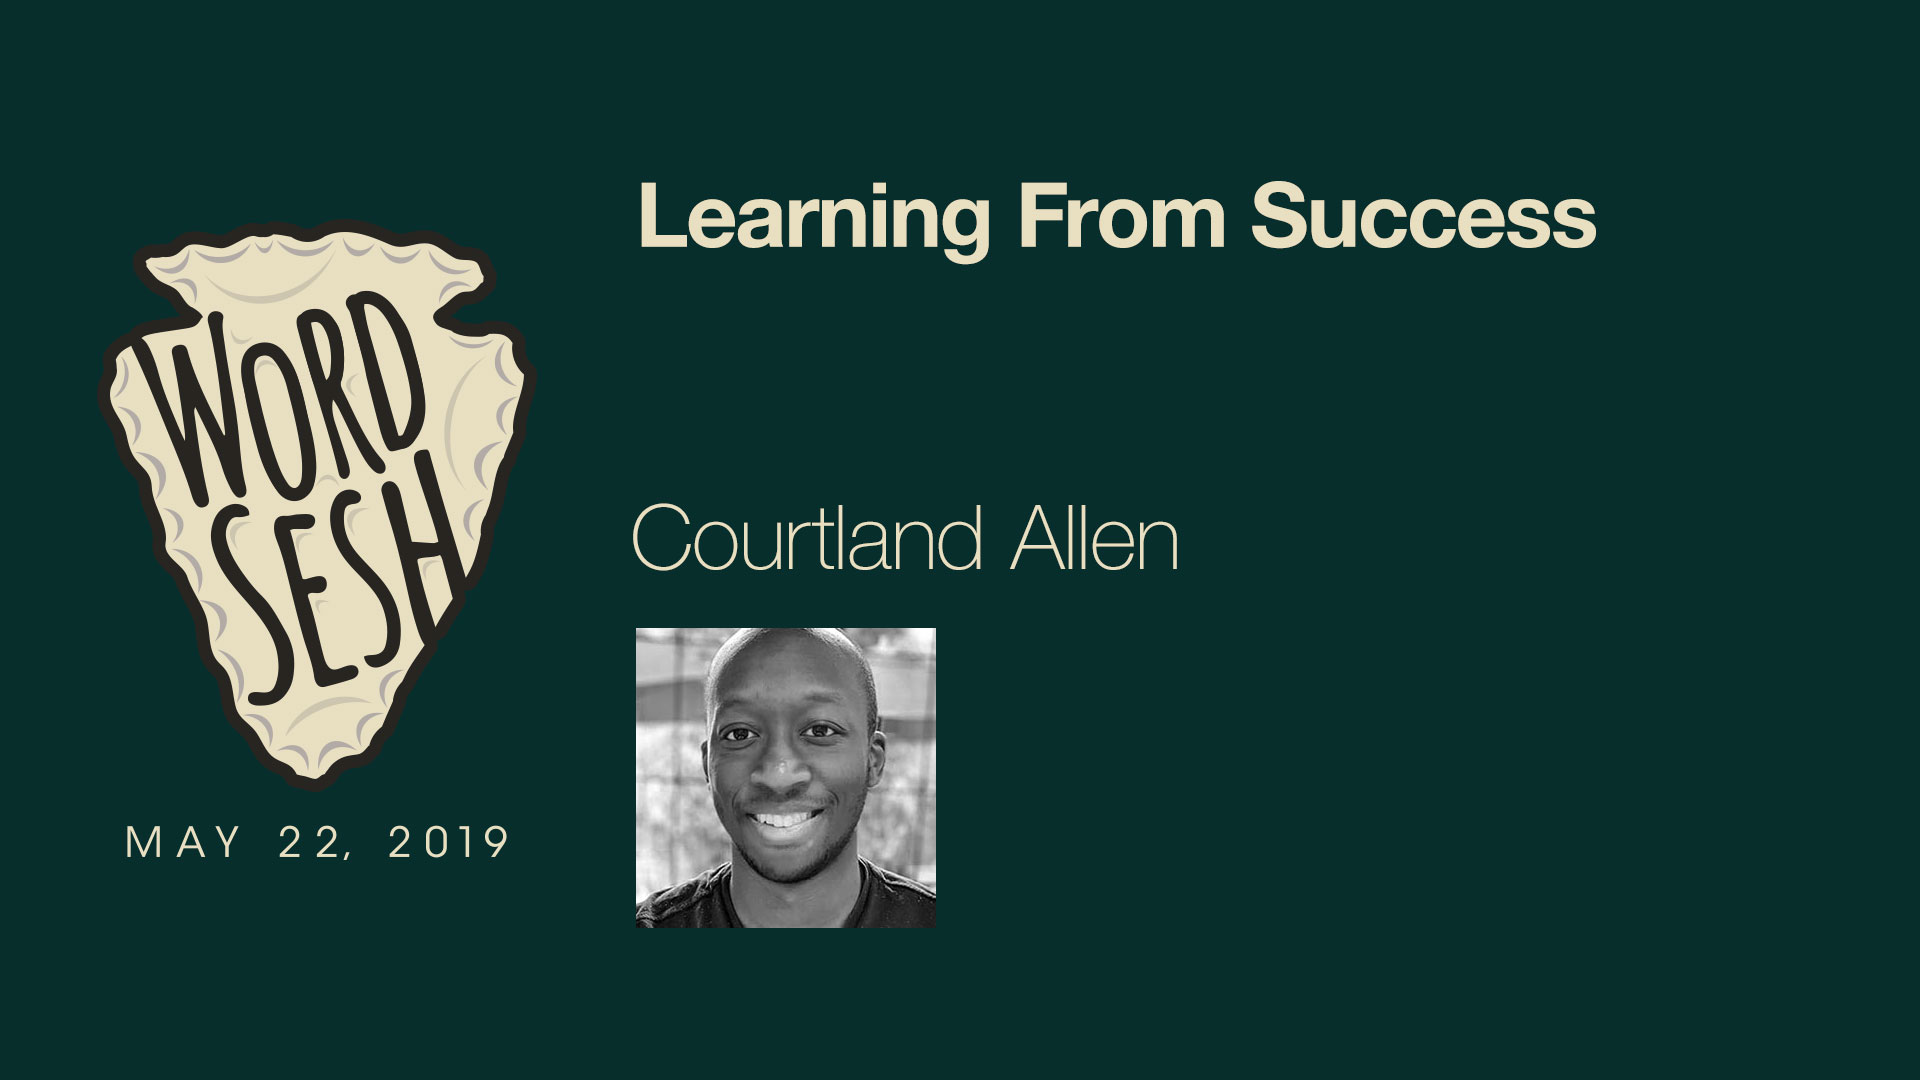 09-WordSesh-Learning-From-Success-Courtland-Allen